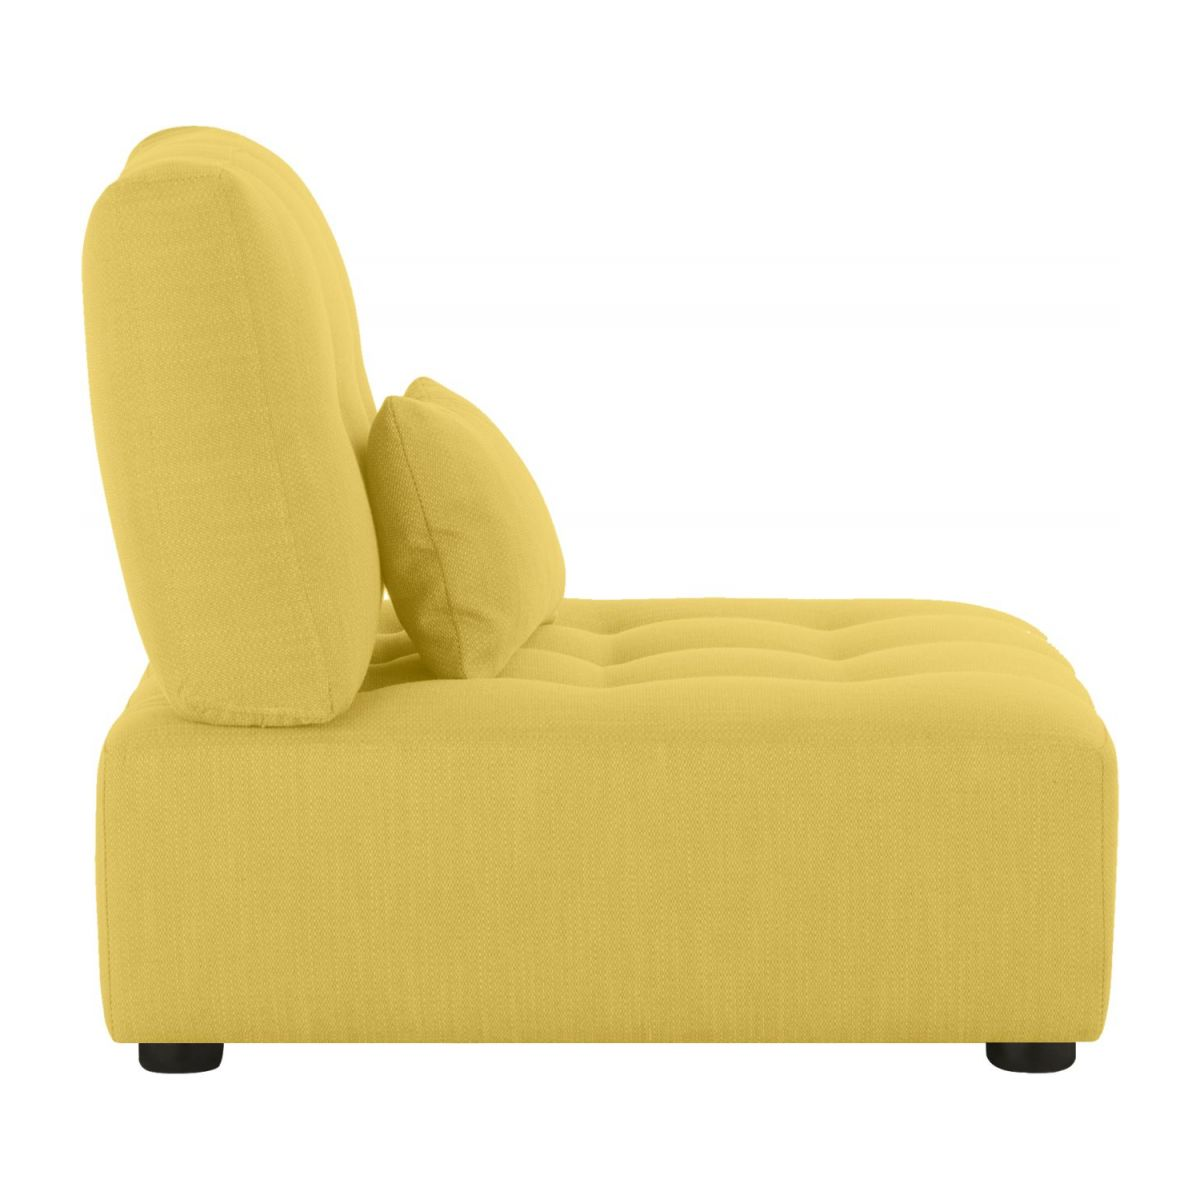 Chaiselongue aus Stoff - Senfgelb n°5